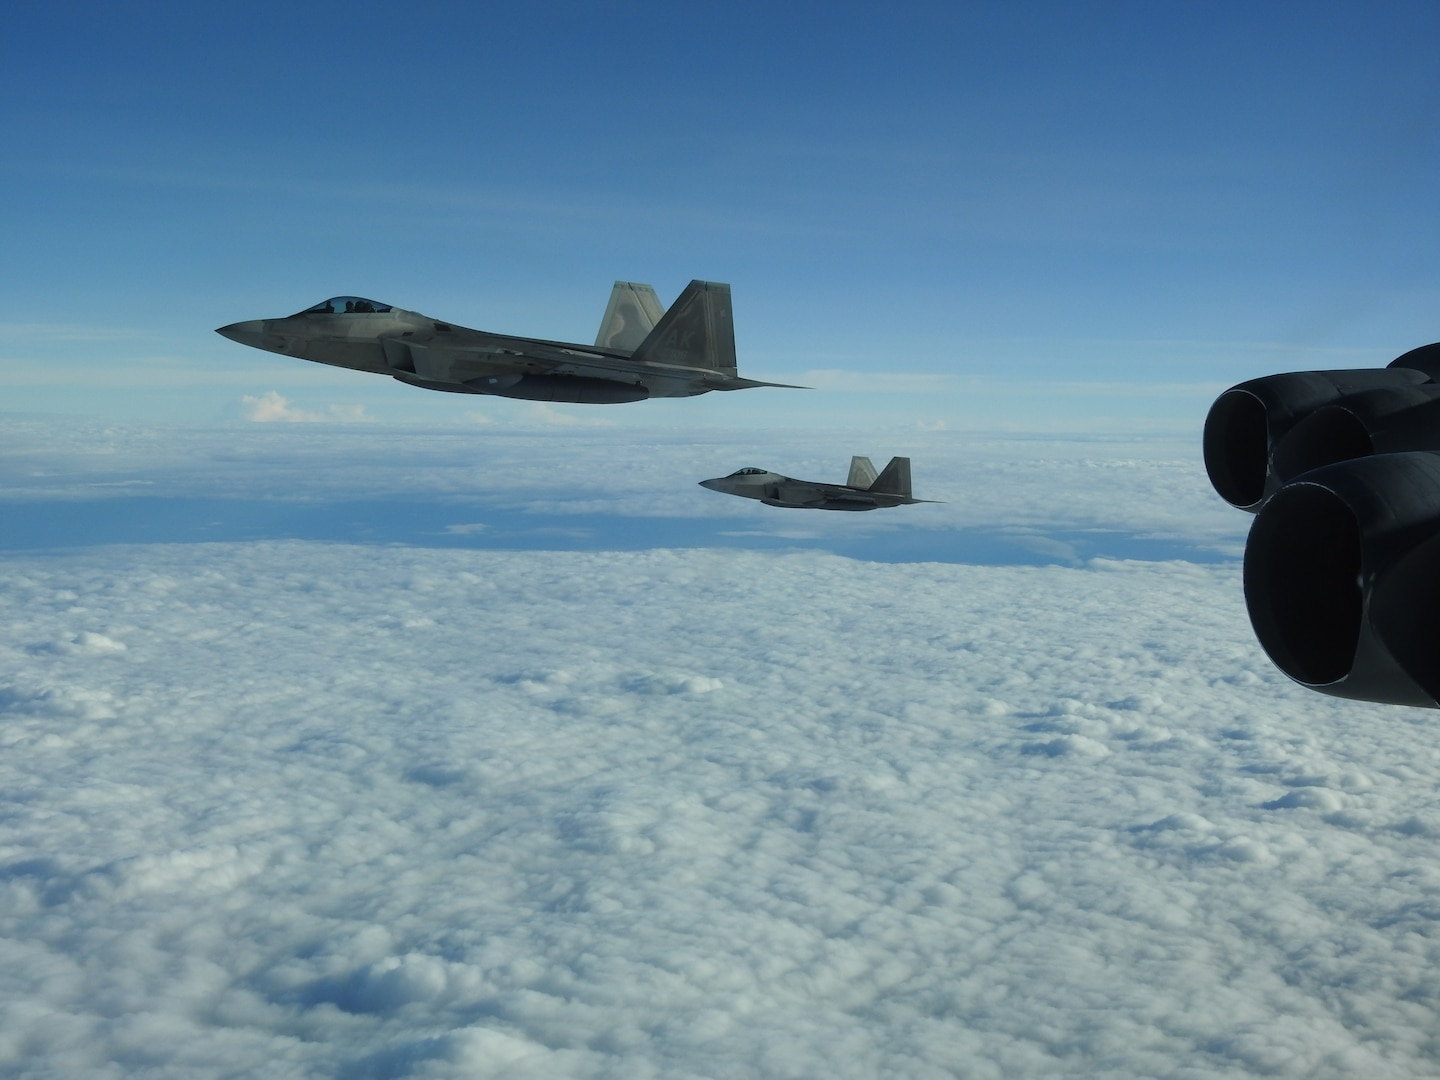 An F-22 Raptor, assigned to Joint Base Elmendorf, Richardson, Alaska, escorts a B-52 Stratofortress during a North American Aerospace Defense Command (NORAD) mission, June 14, 2020. NORAD routinely conducts intercept training in support of its mission to protect the sovereign airspaces of the United States and Canada. (Courtesy Photo)